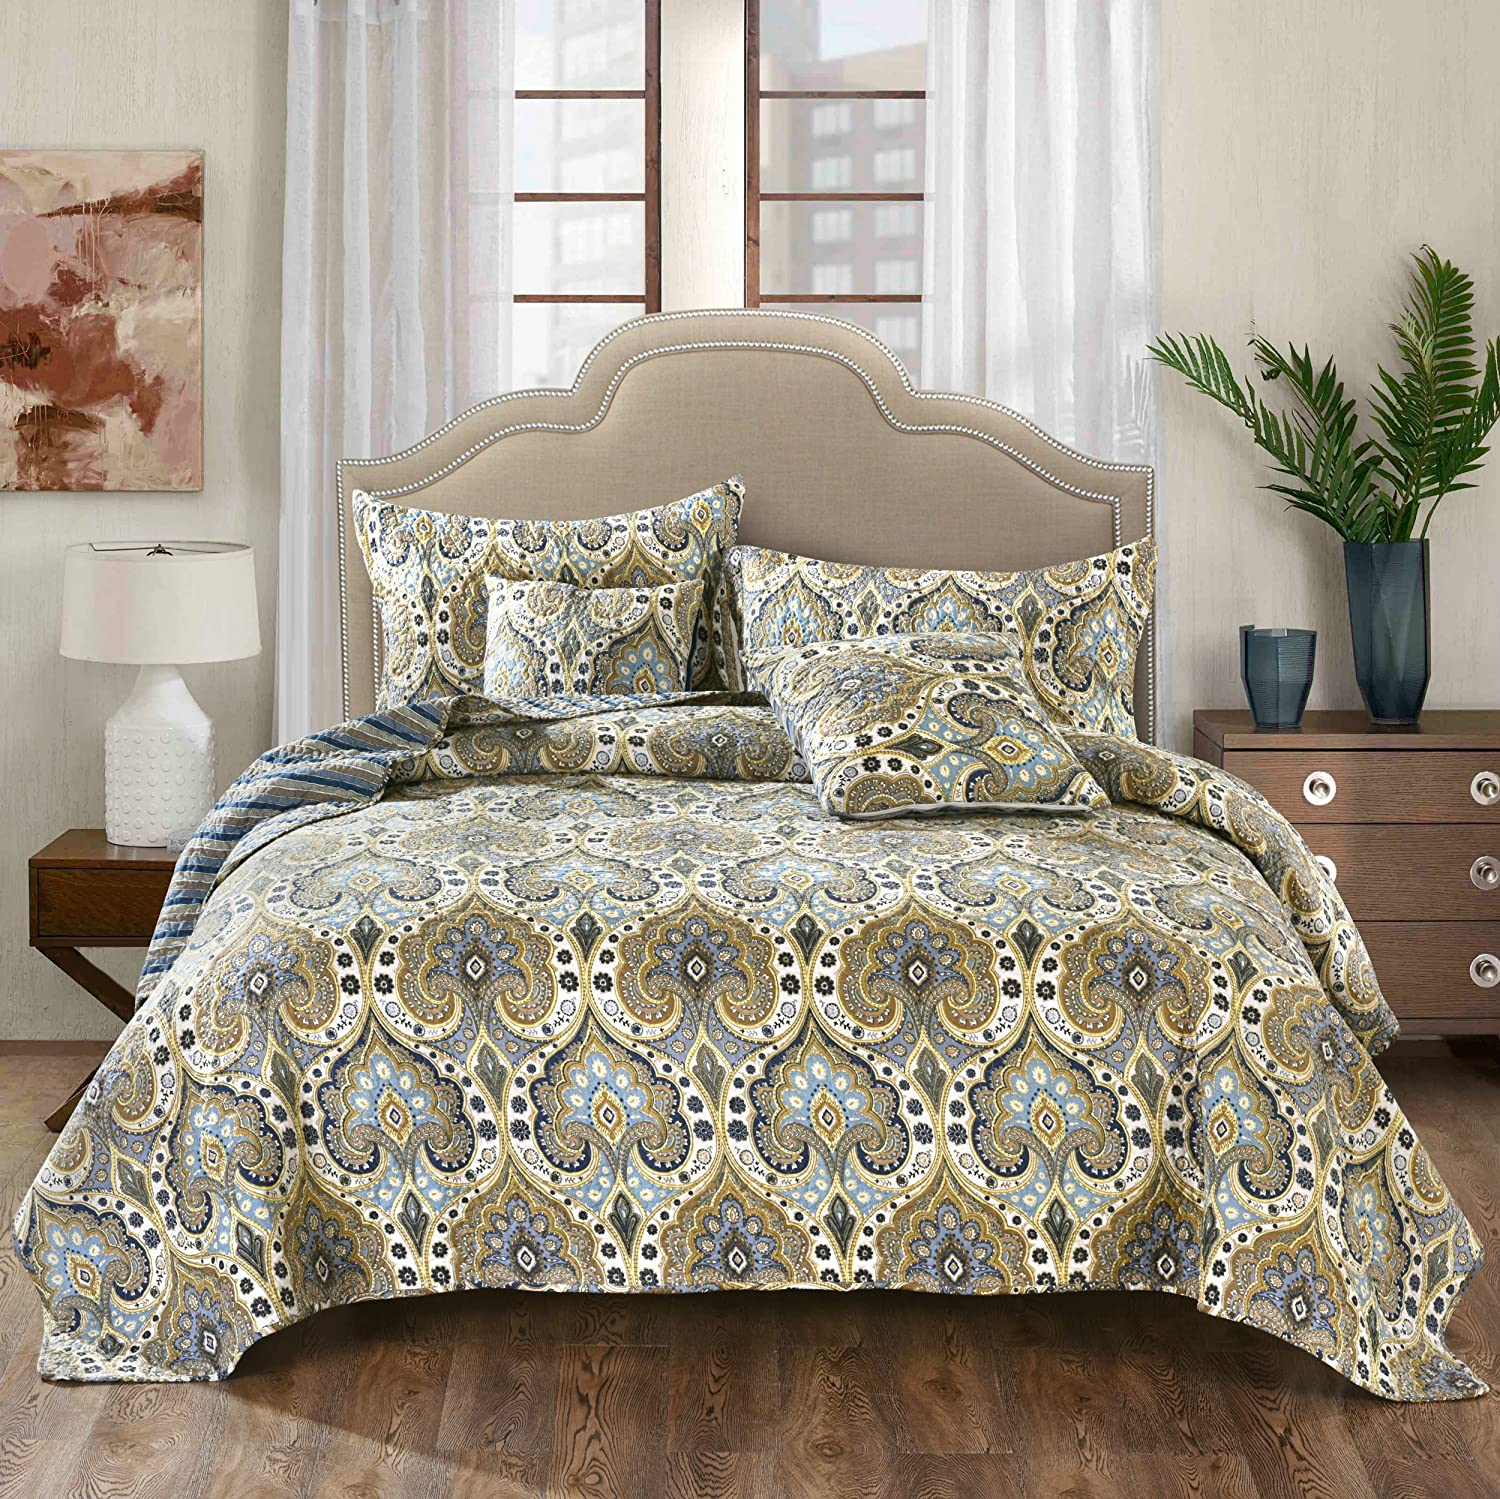 Tache Home Fashion Bohemian Spades Quilted Coverlet Bedspread Set - Bright Vibrant Multi Colorful Olive Green Navy Blue Floral Print - King - 3-Pieces